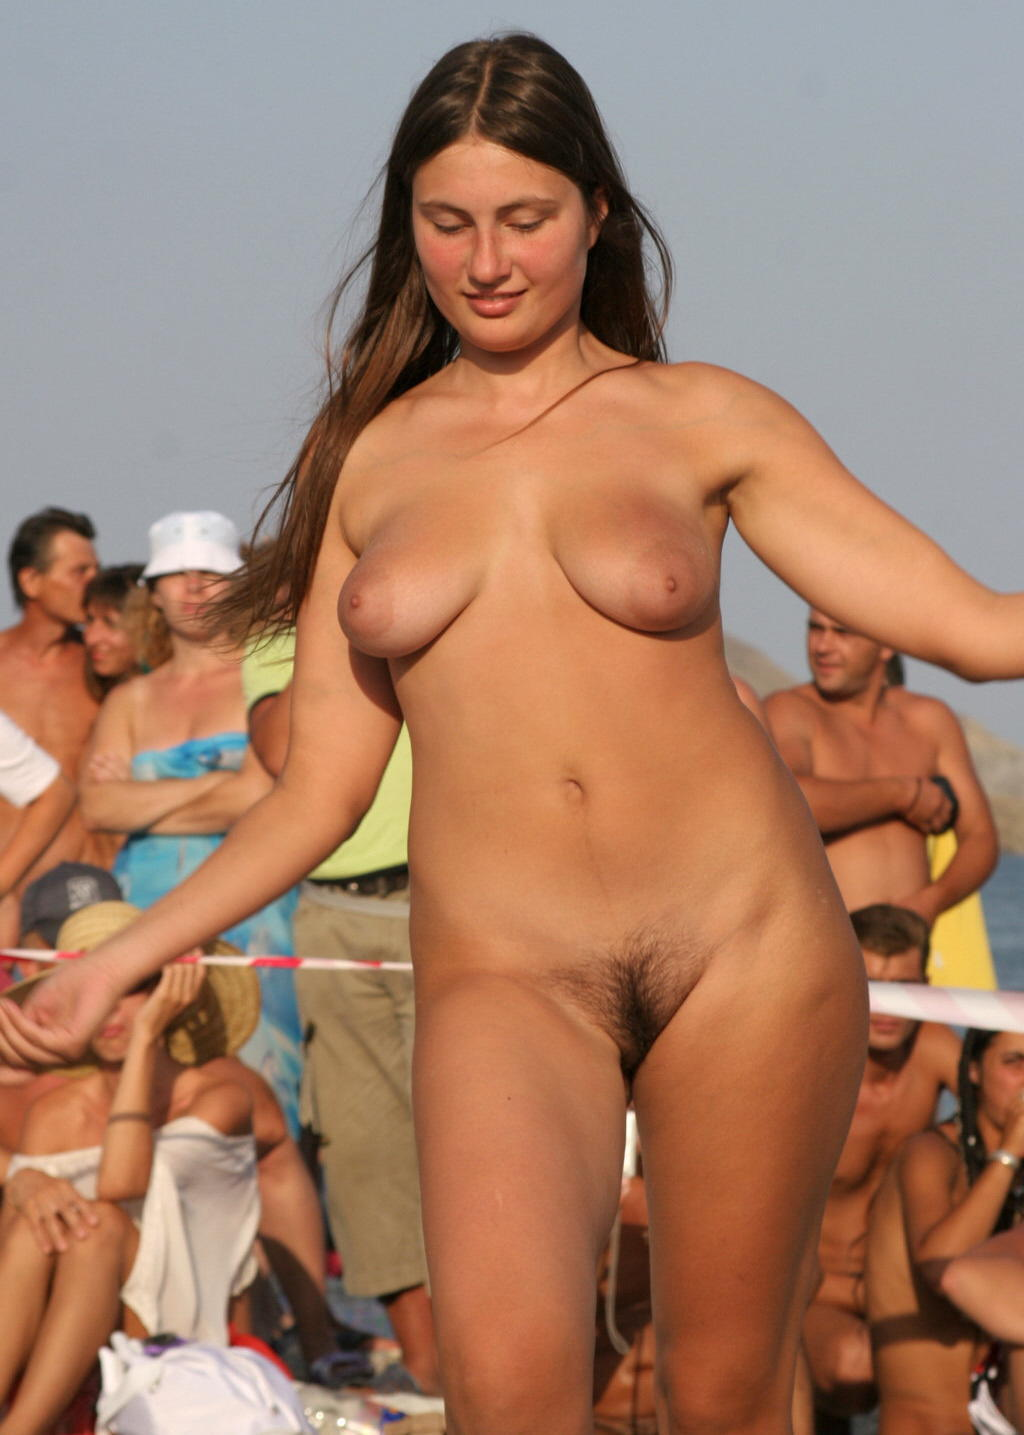 Nudist dancing pics has